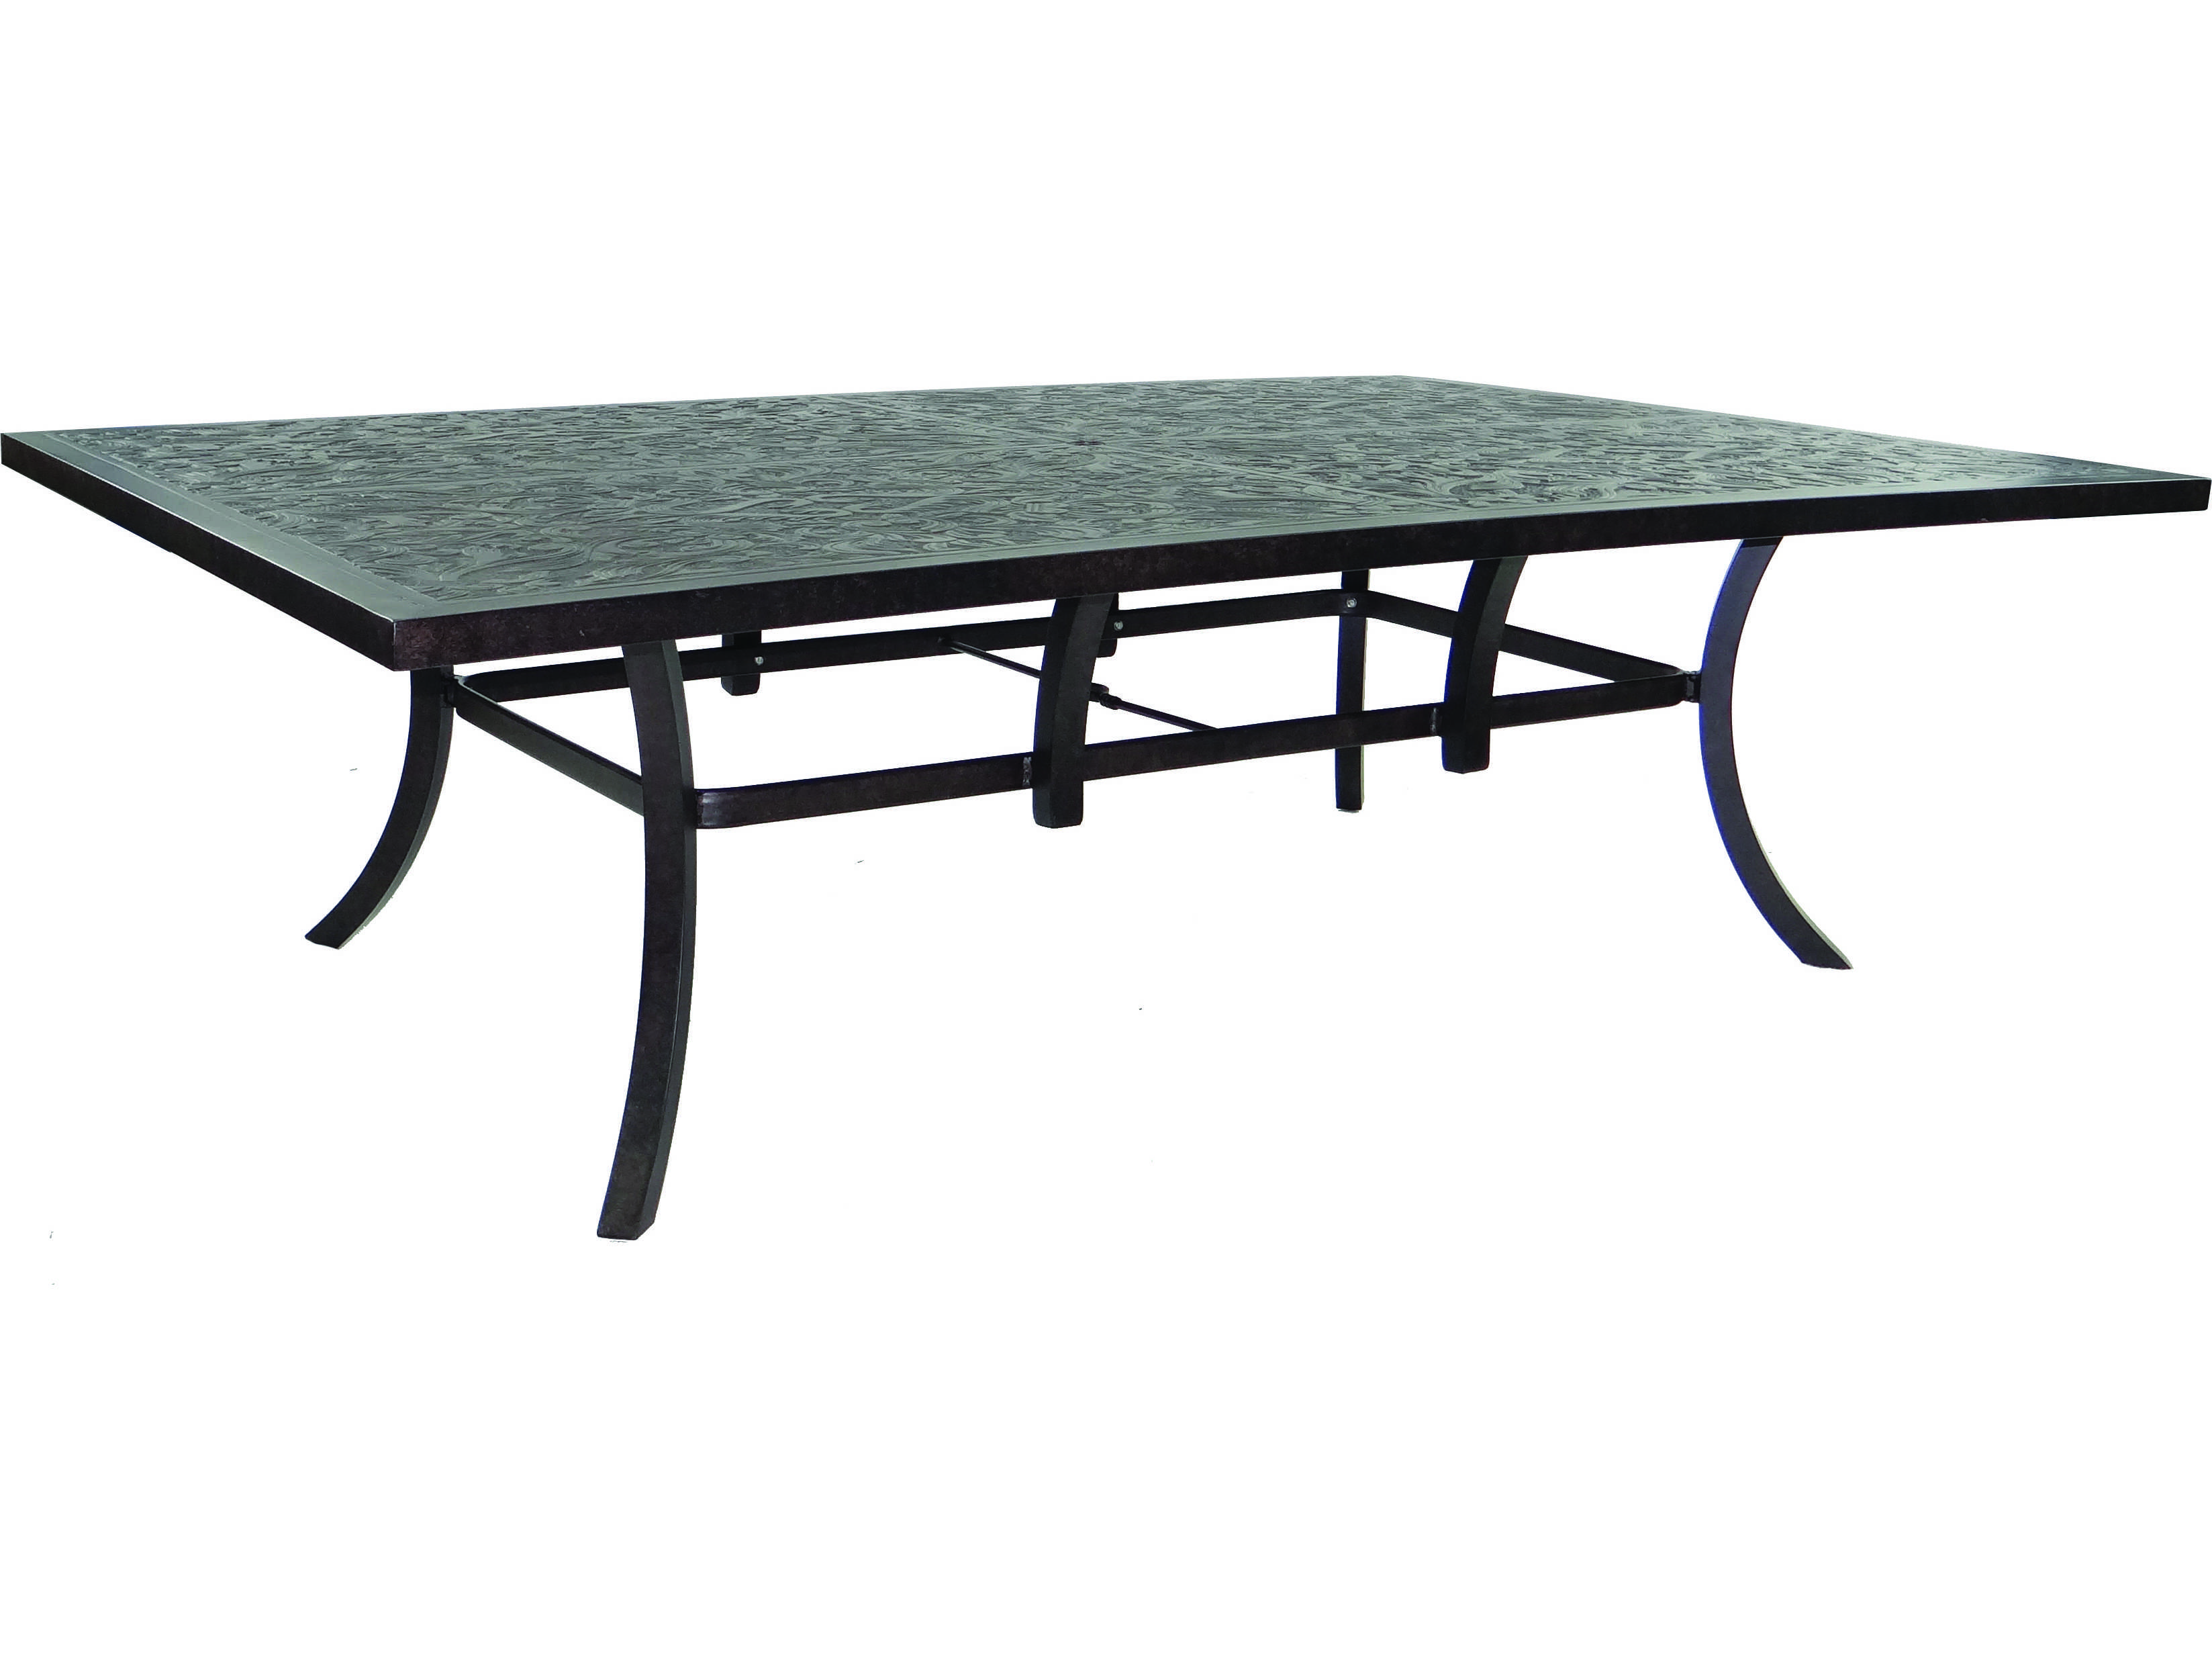 Castelle Classical Cast Aluminum 96 X 64 Rectangular Dining Table Ready To As